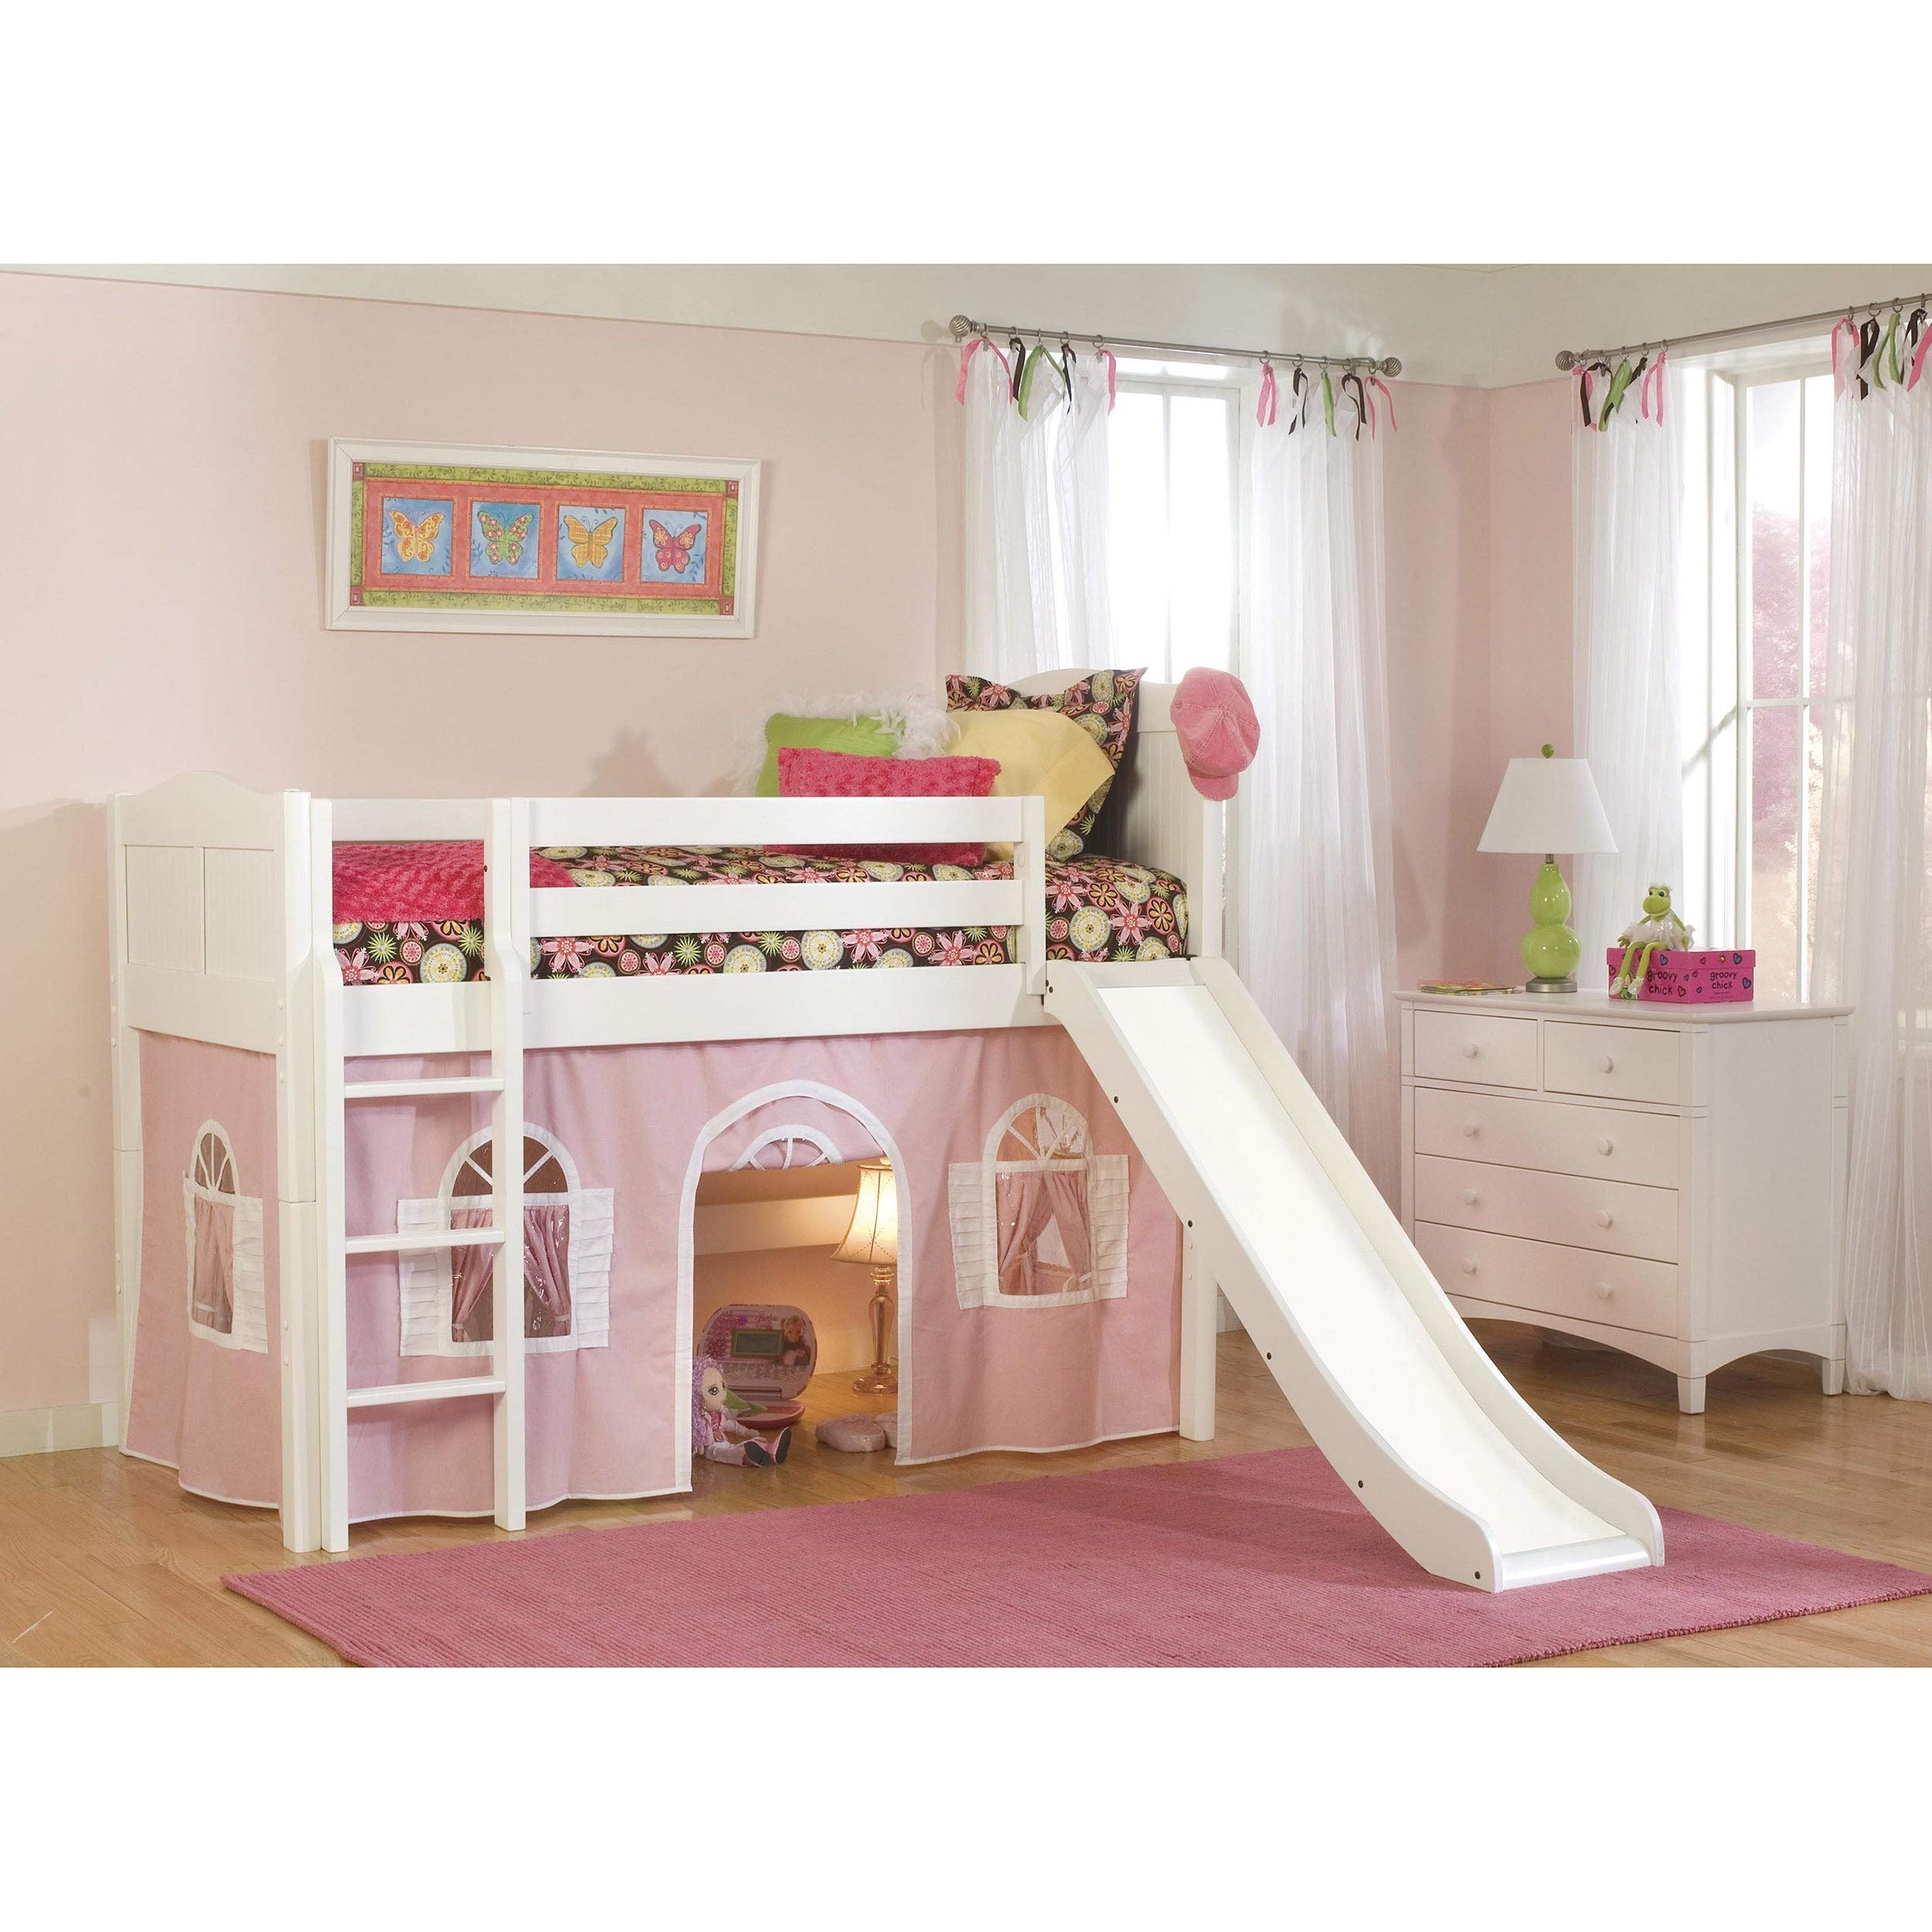 Bolton Furniture White Low-Loft Twin Playhouse Bed with Slide and Ladder by Bolton Furniture